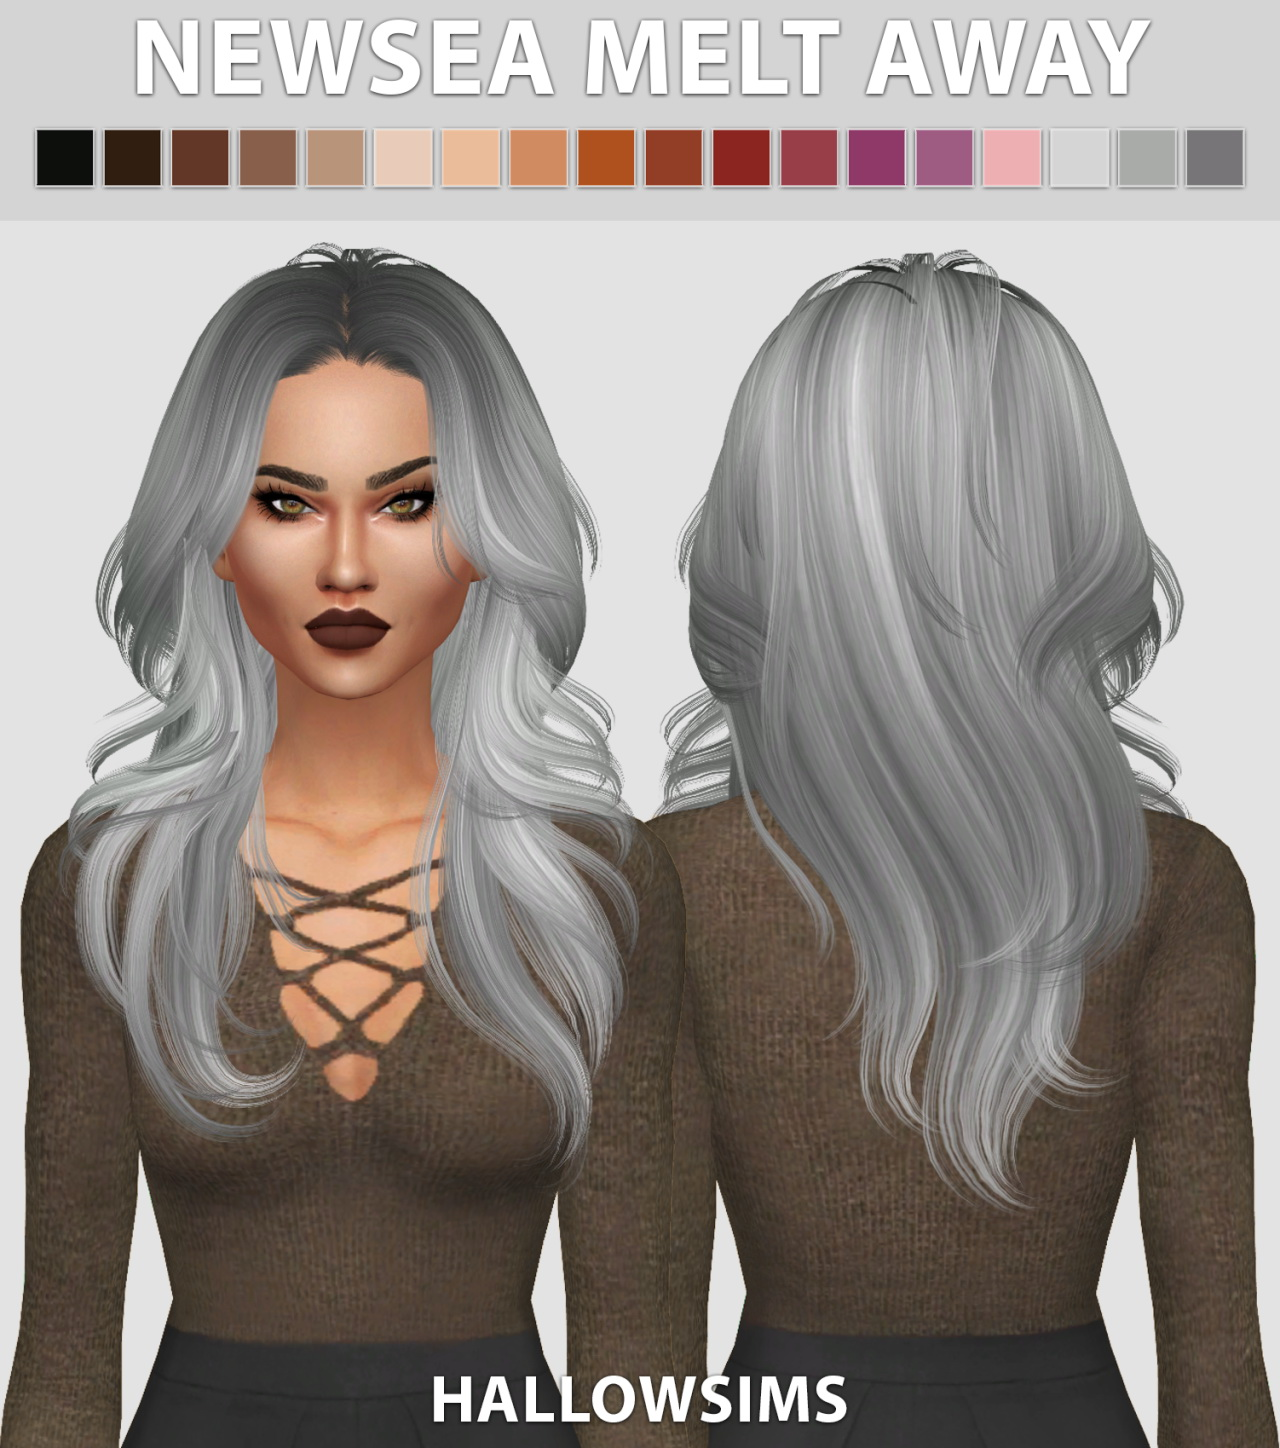 Sims 4 Hairstyles: Hallow Sims: Newsea`s Melt Away Hair Retextured